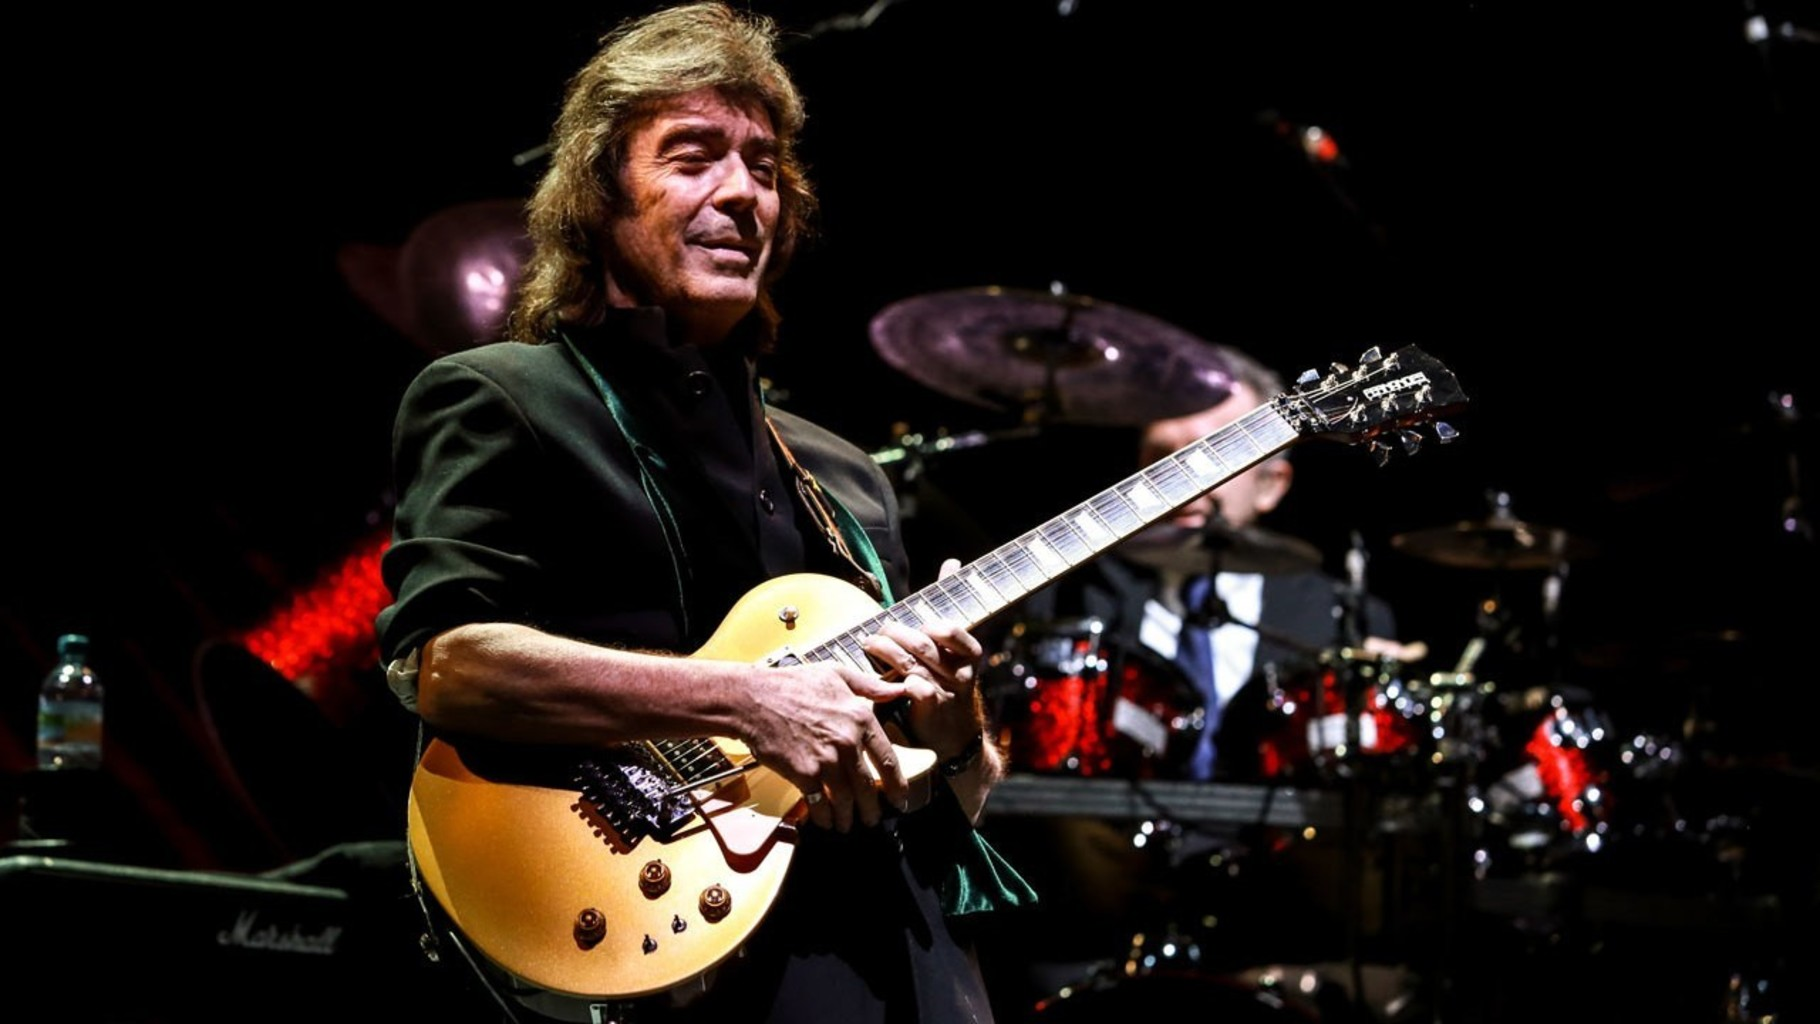 Concert preview genesis co founder steve hackett at rph solo pic